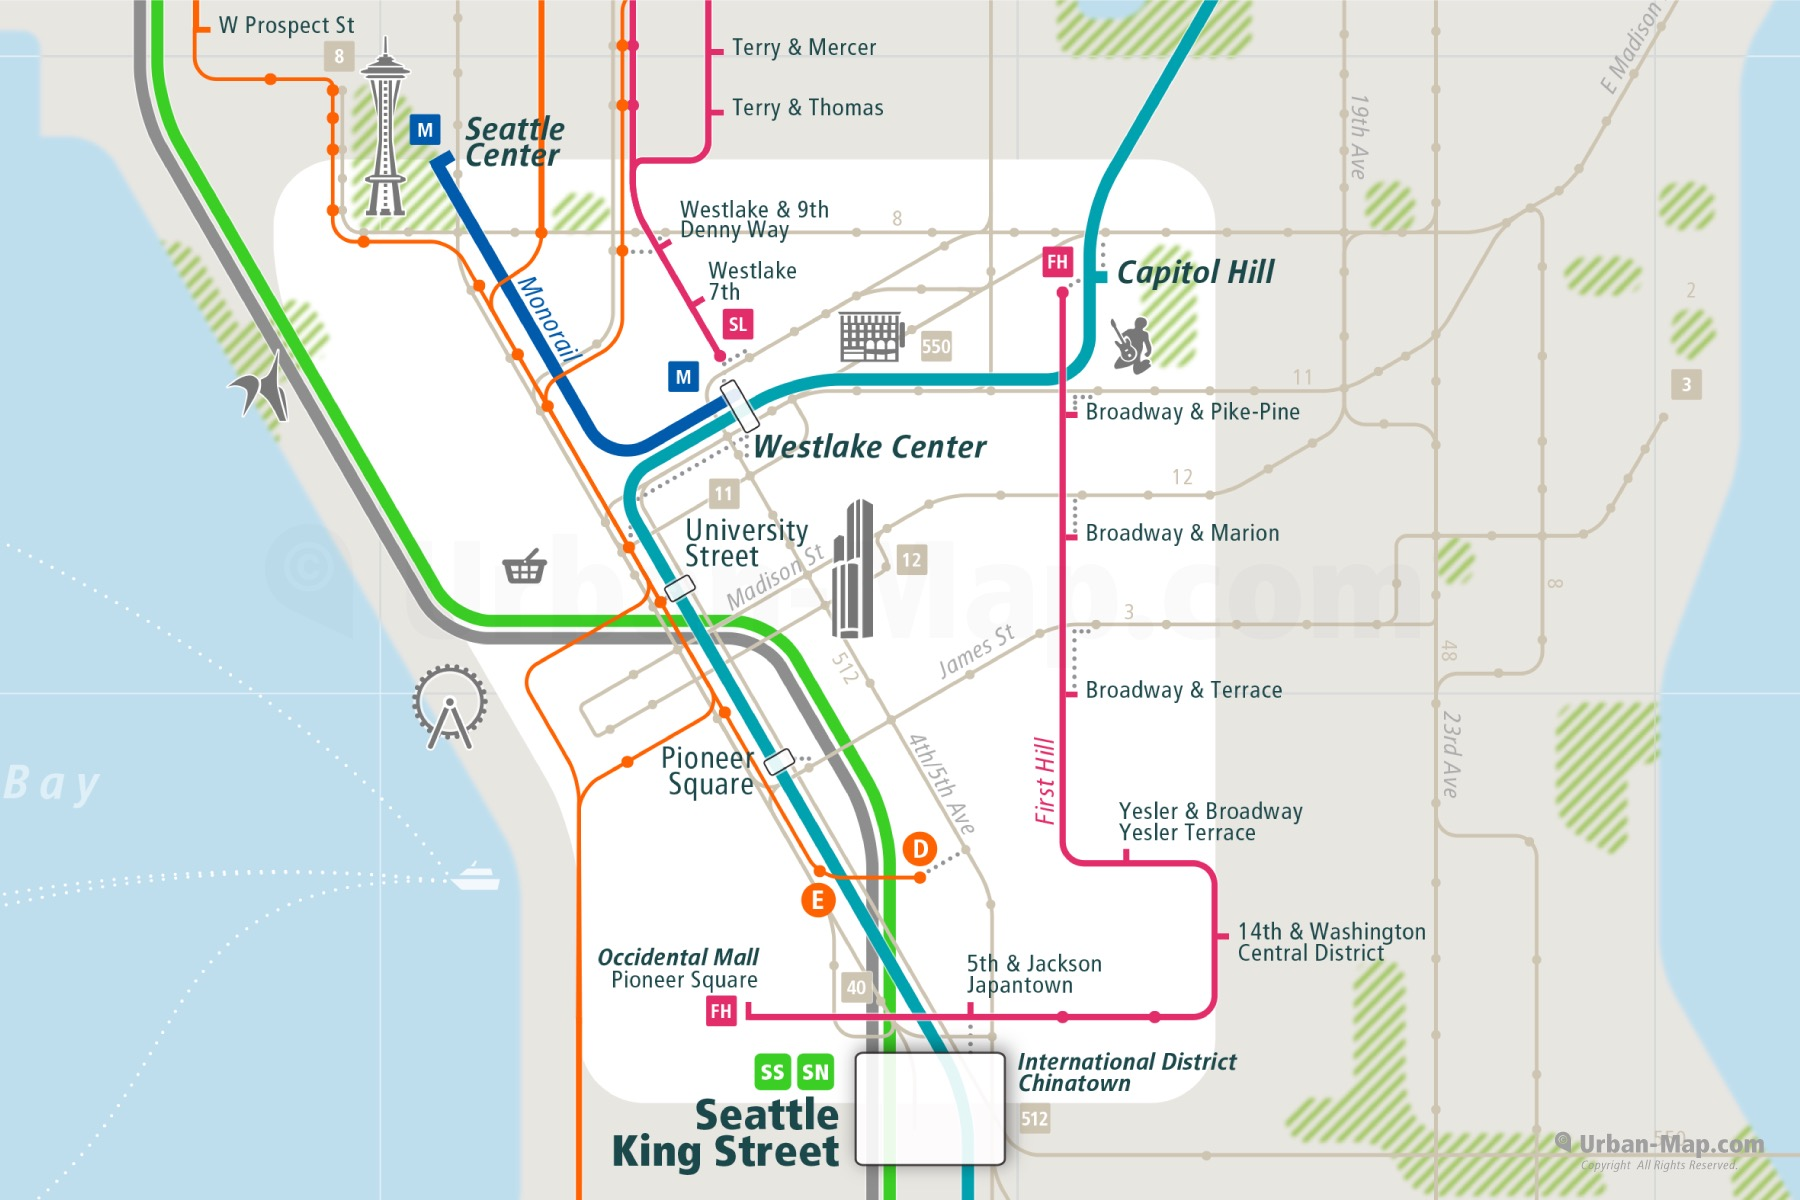 Seattle City Rail Map shows the train and public transportation routes of RapidRide BTR bus rapid transit, bus, monorail, commuter train - Close-Up